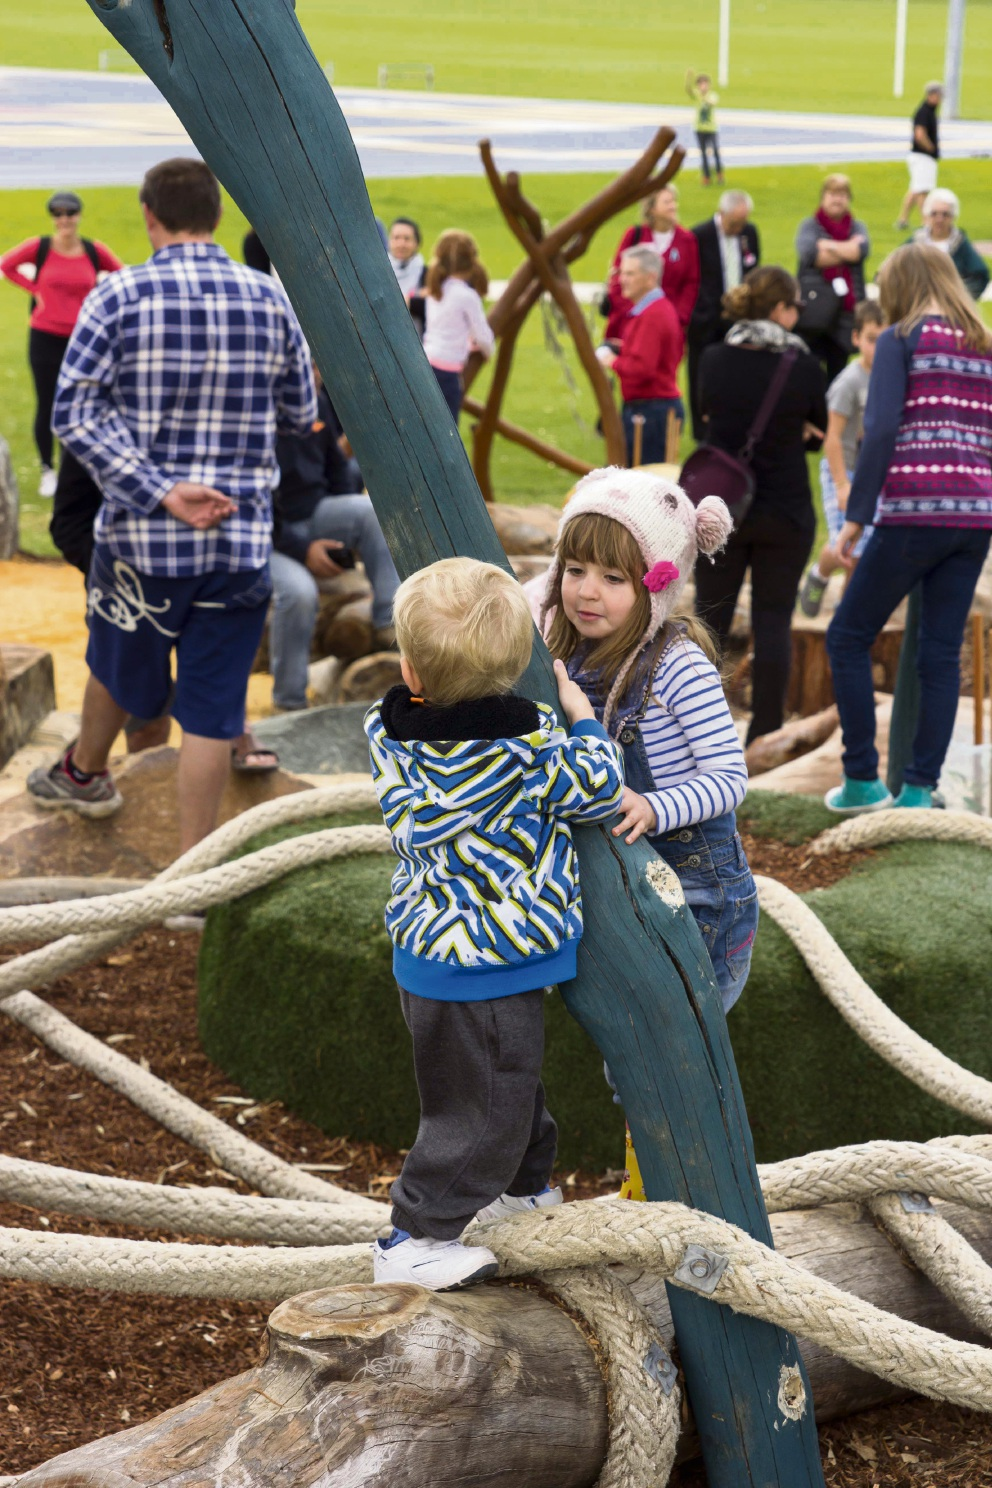 The Webber Reserve nature play initiative from the first Project Robin Hood in 2013.